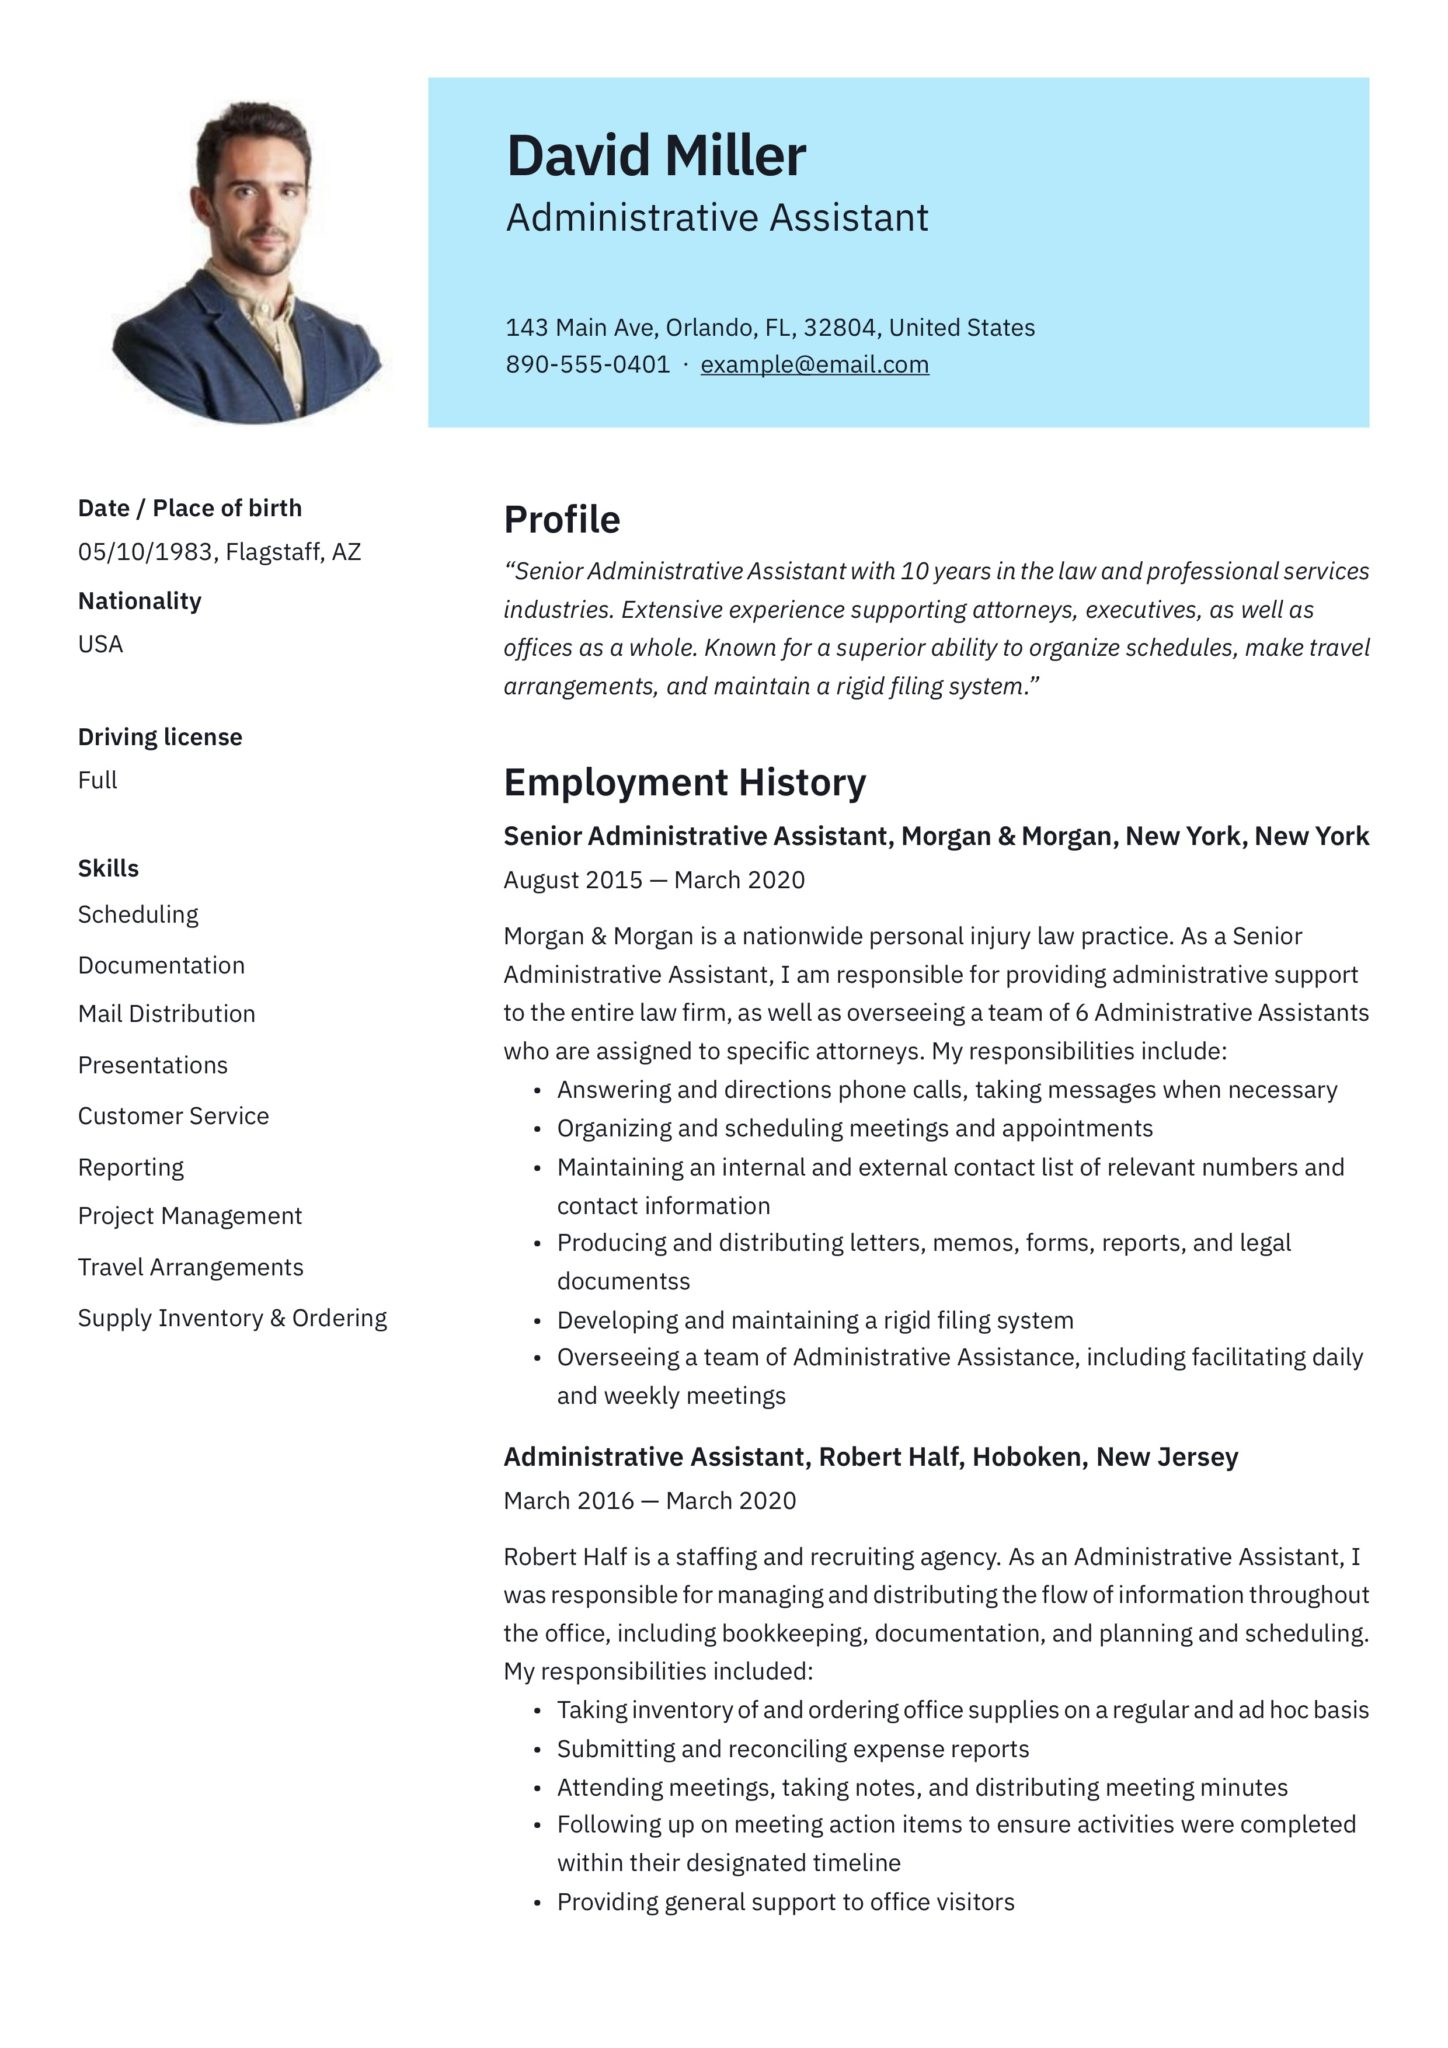 free administrative assistant resumes writing guide pdf executive resume examples scaled Resume Executive Assistant Resume Examples 2020